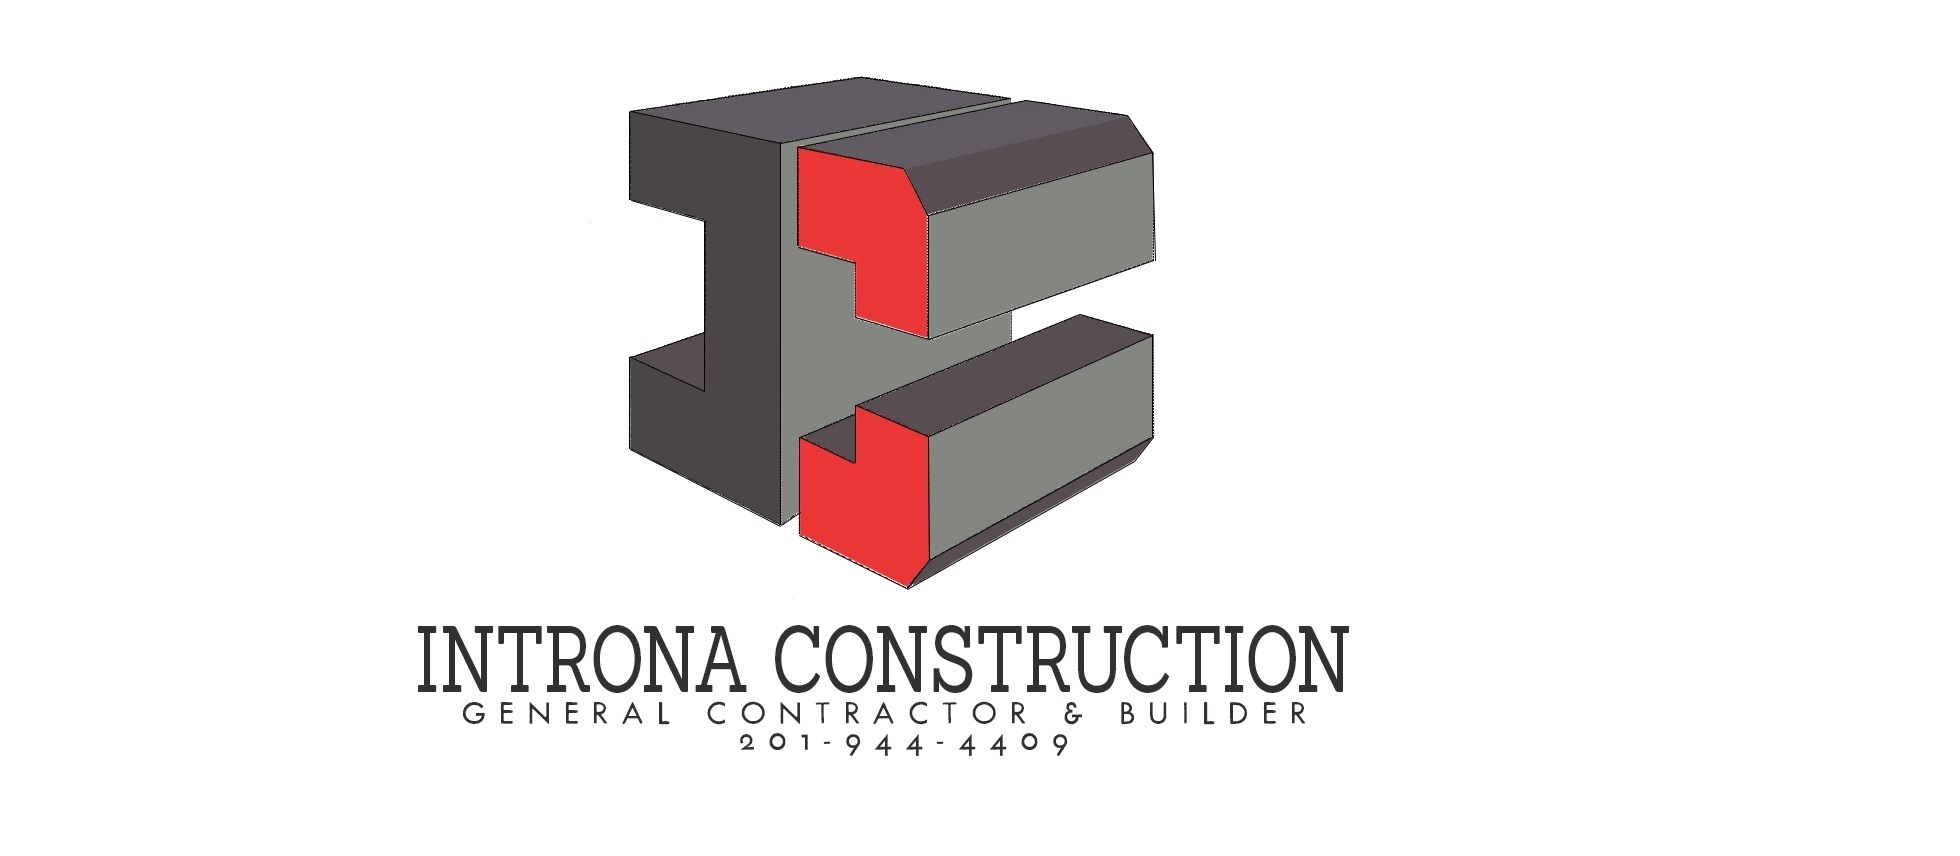 introna-construction-2